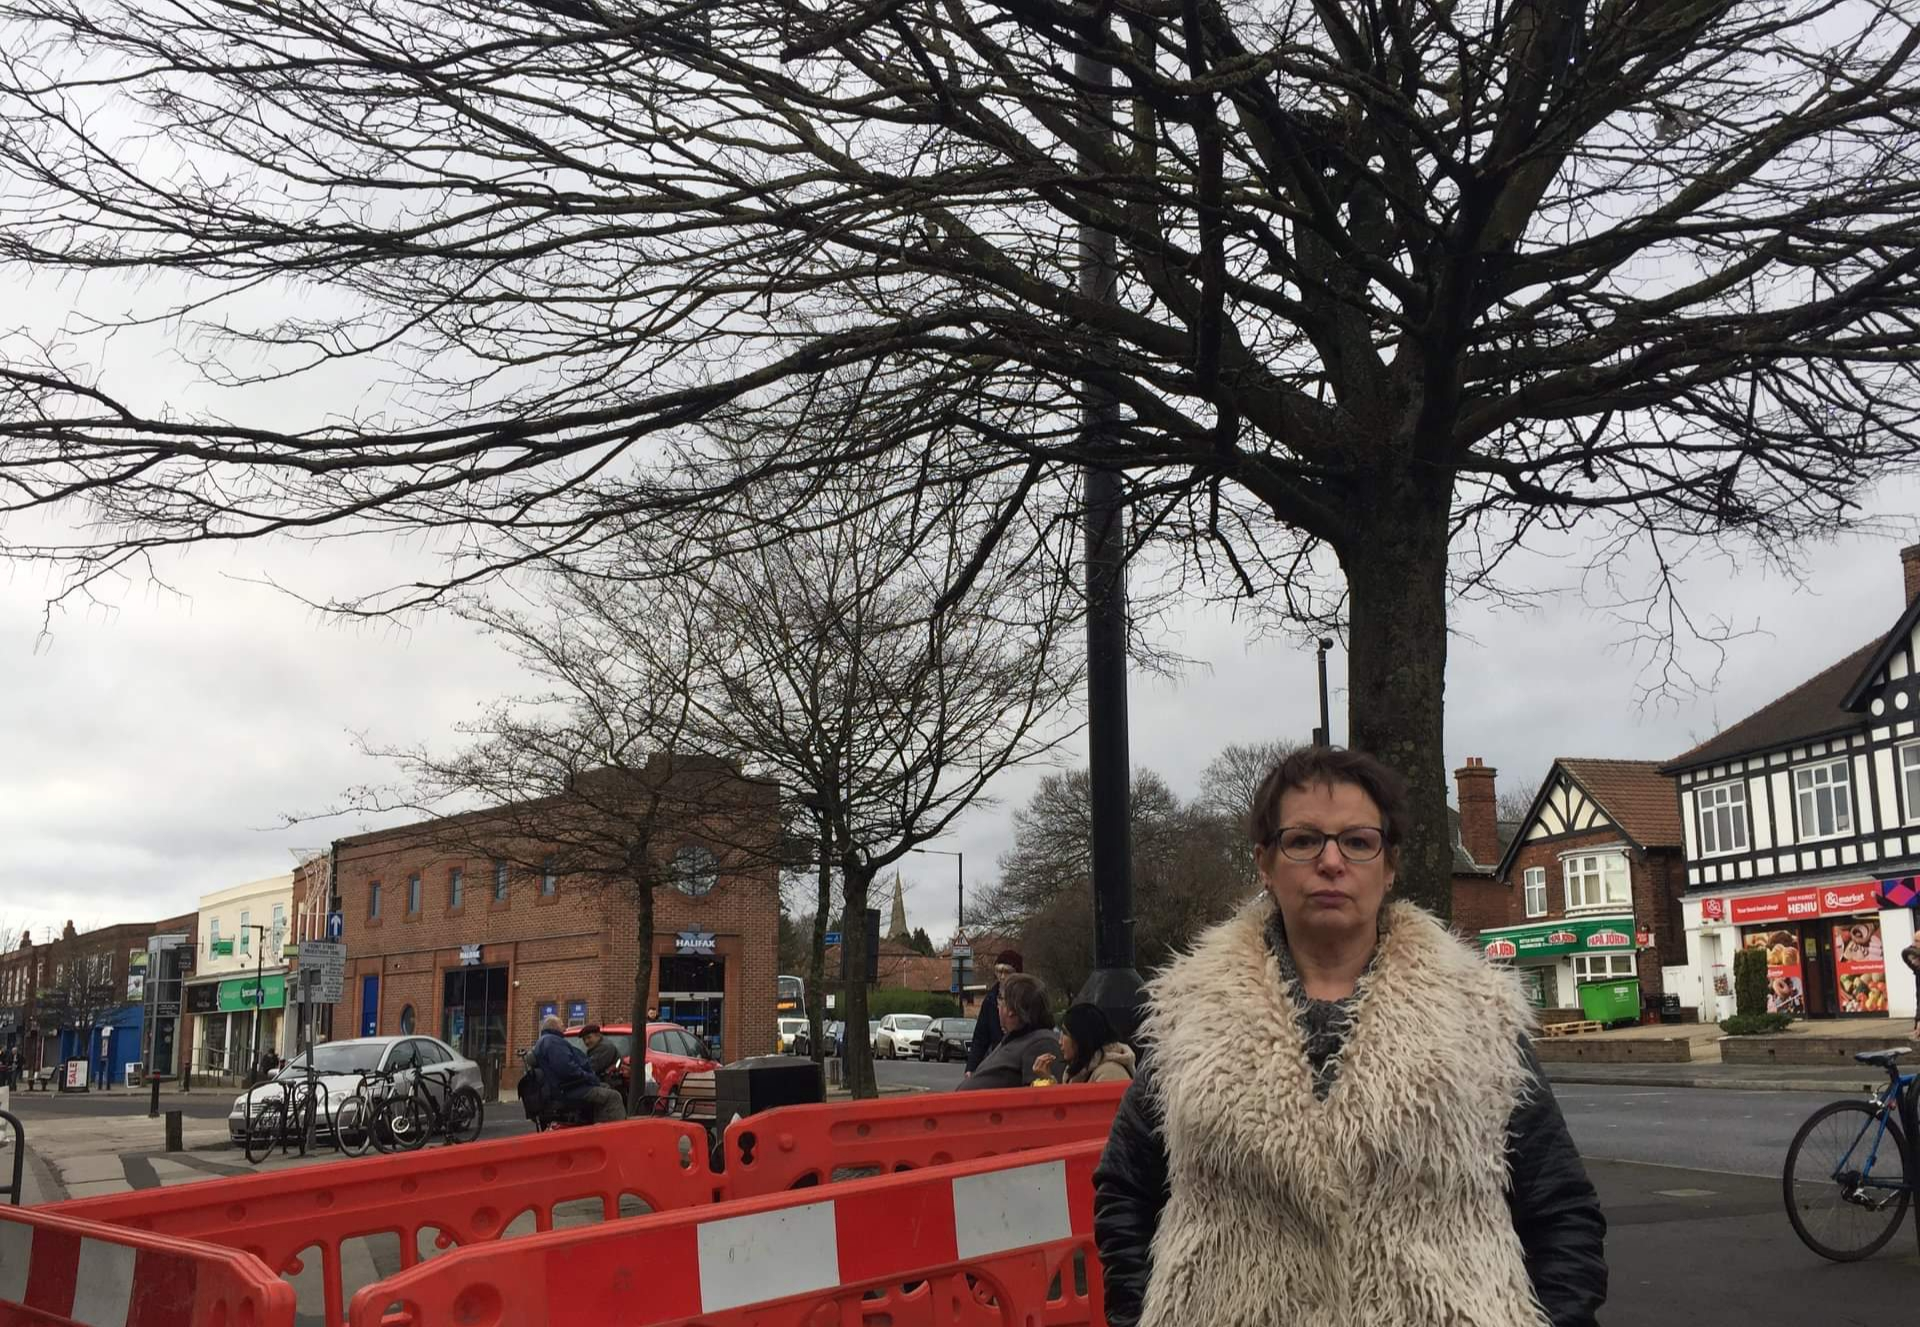 Local Lib Dem Councillor urges Council to 'save the tree'